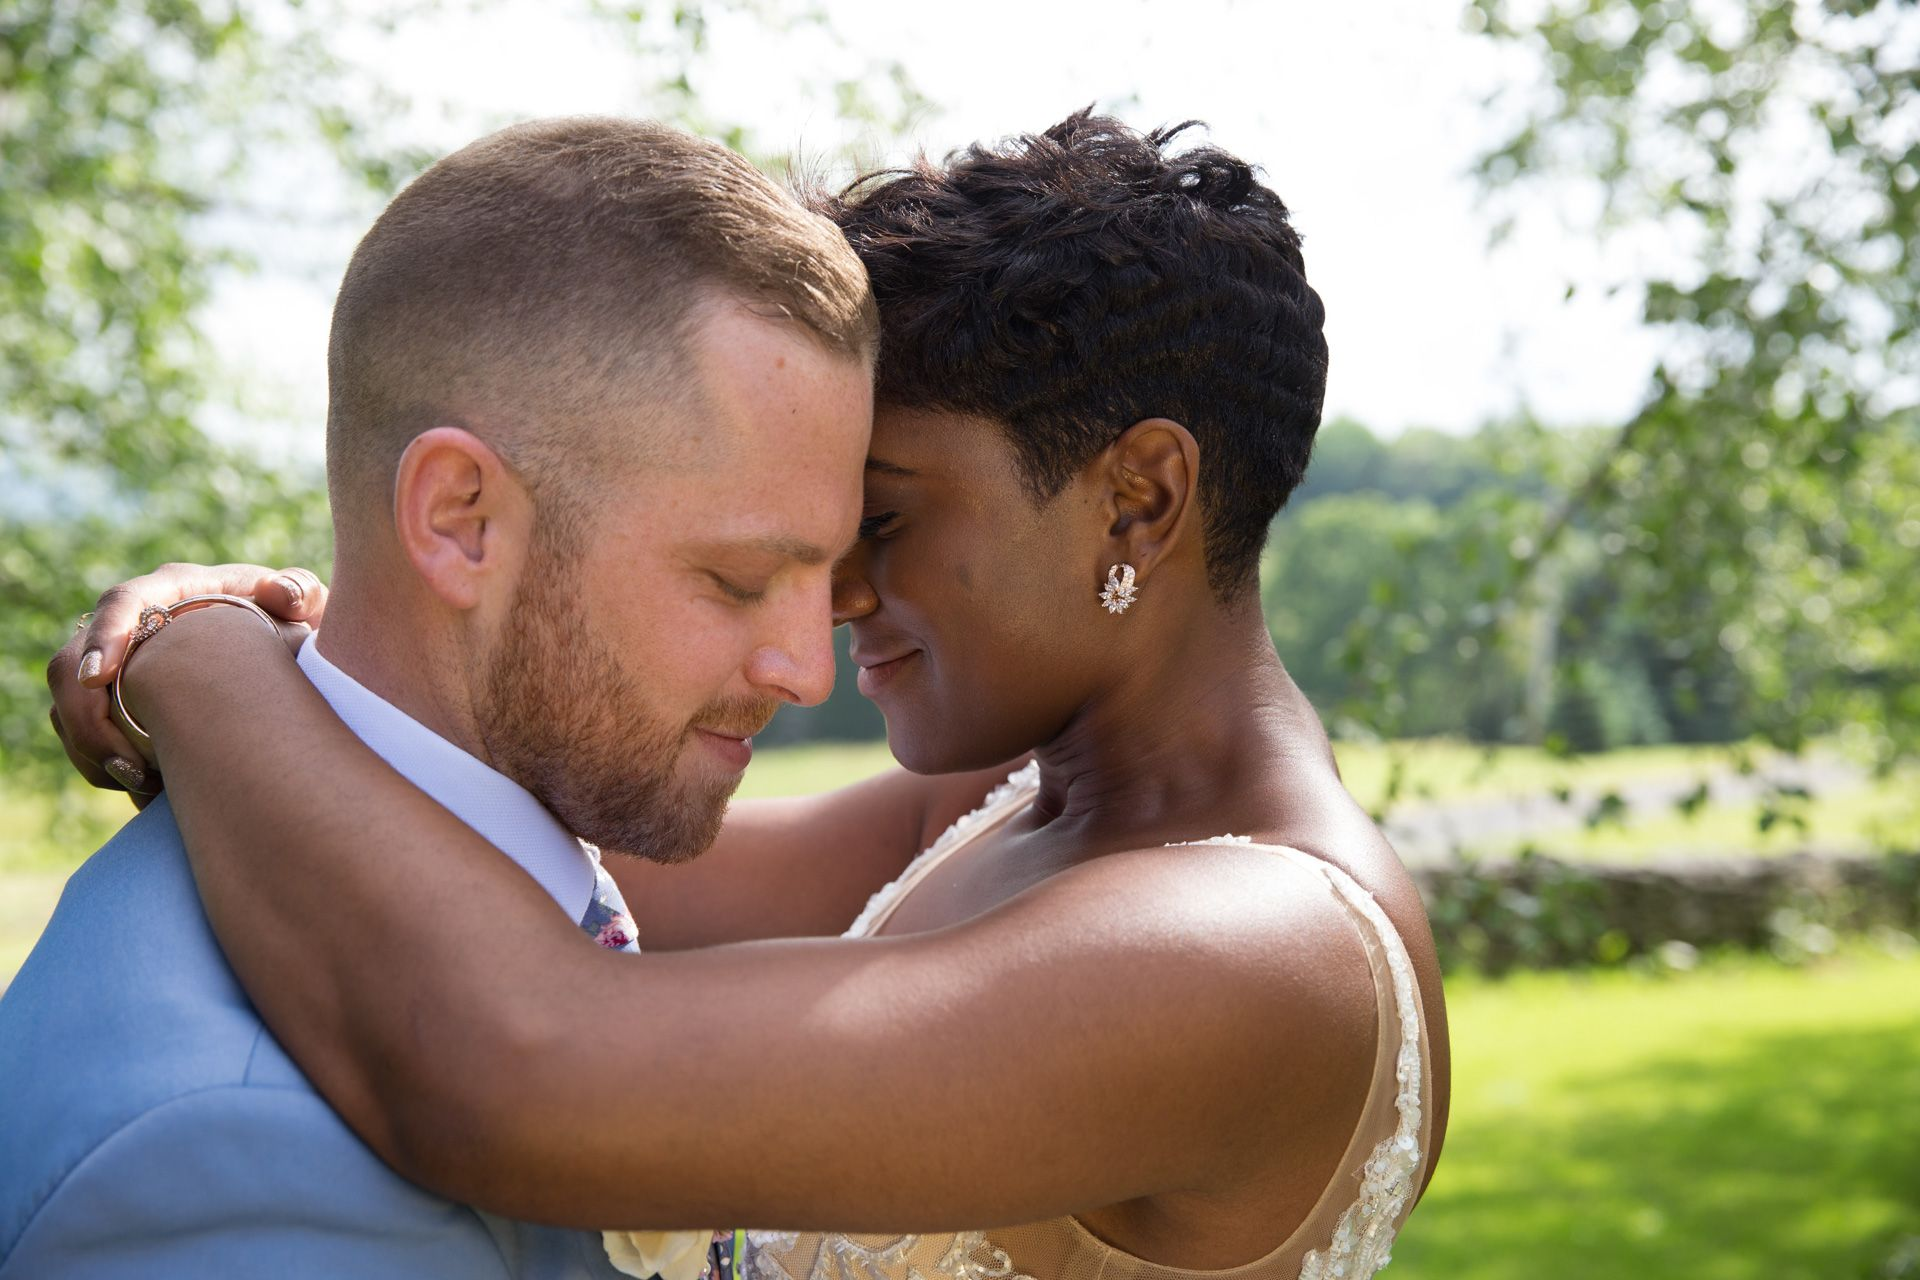 Male intimate couples videographer